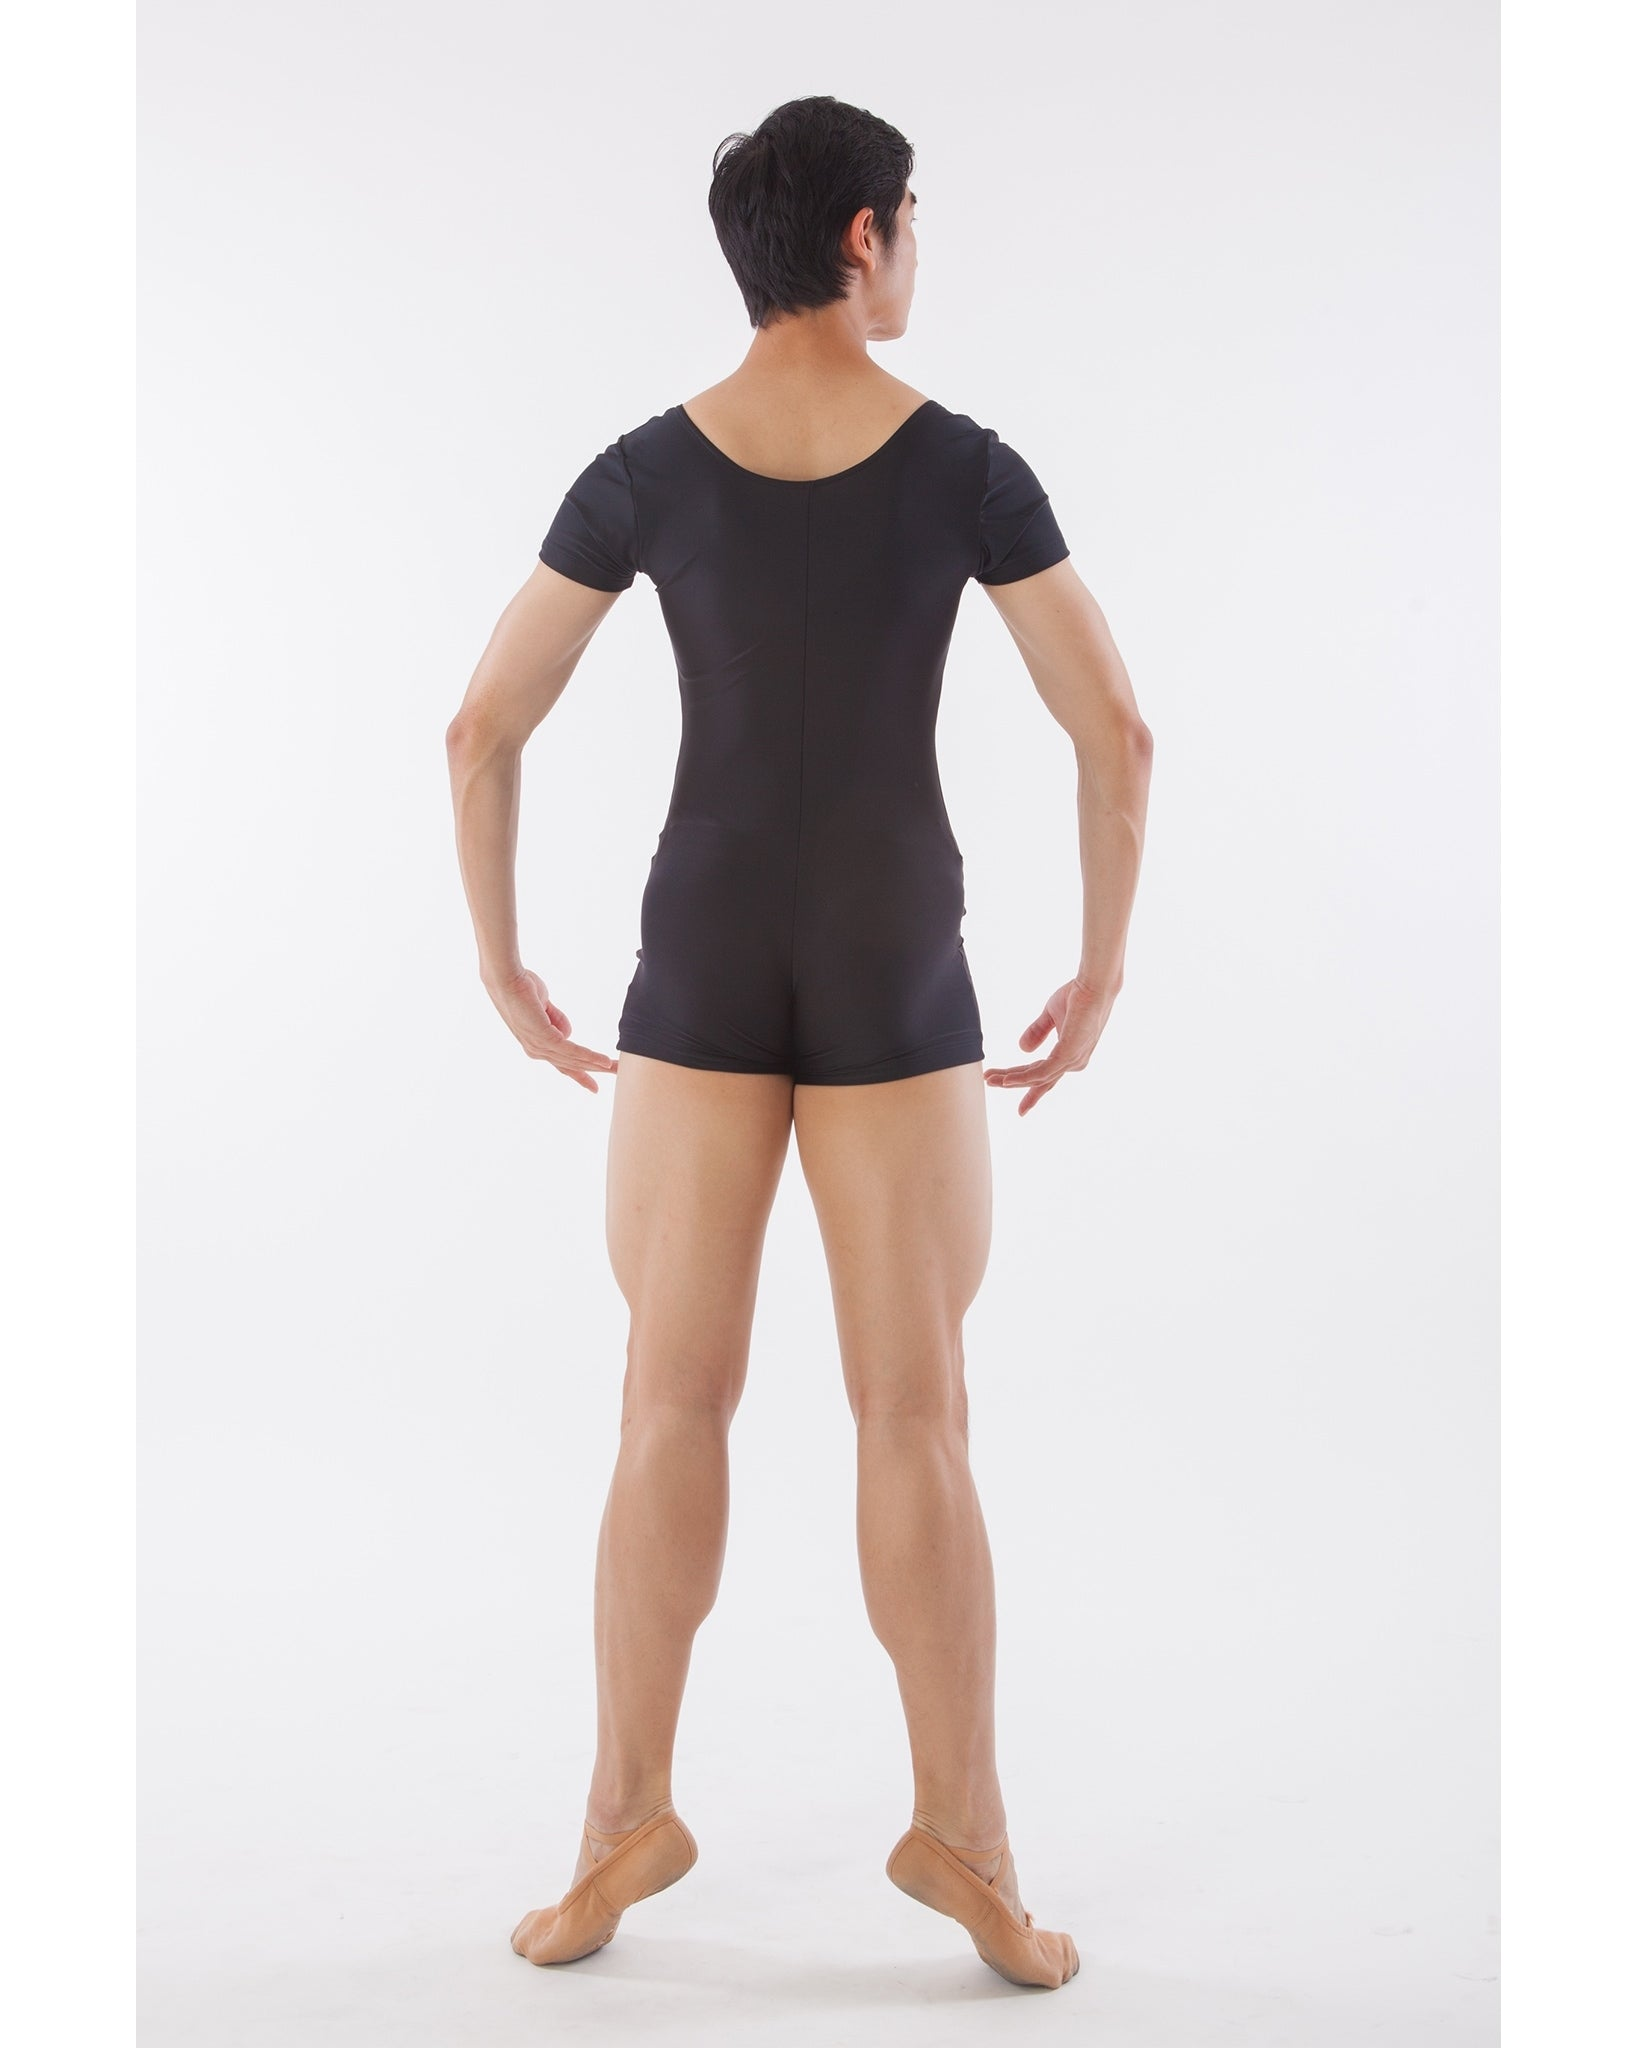 Sonata Short Sleeve Biketard - MUB05 Mens - Dancewear - Men's & Boys - Dancewear Centre Canada